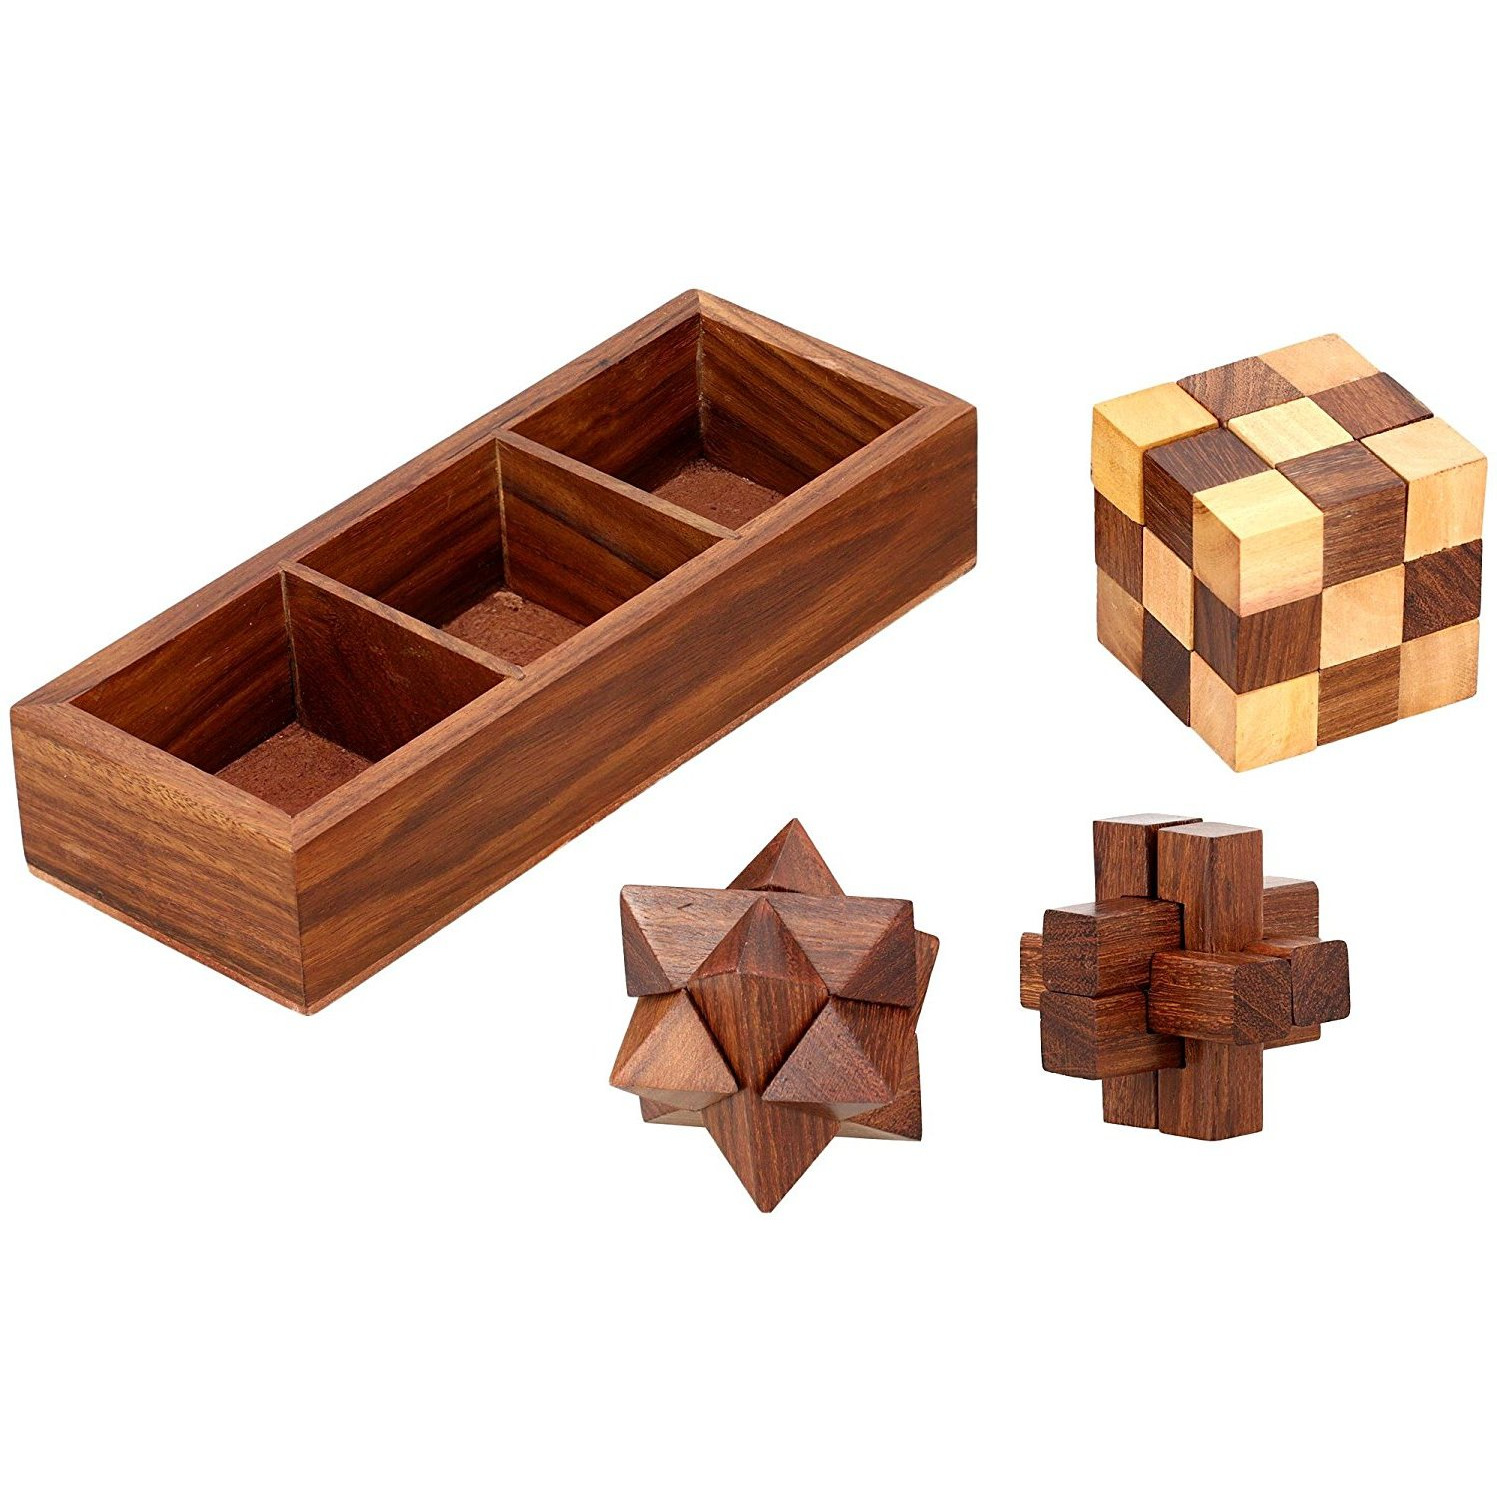 Winmaarc 3 In One Wooden Puzzle Games Set   3D Puzzles For Teens And